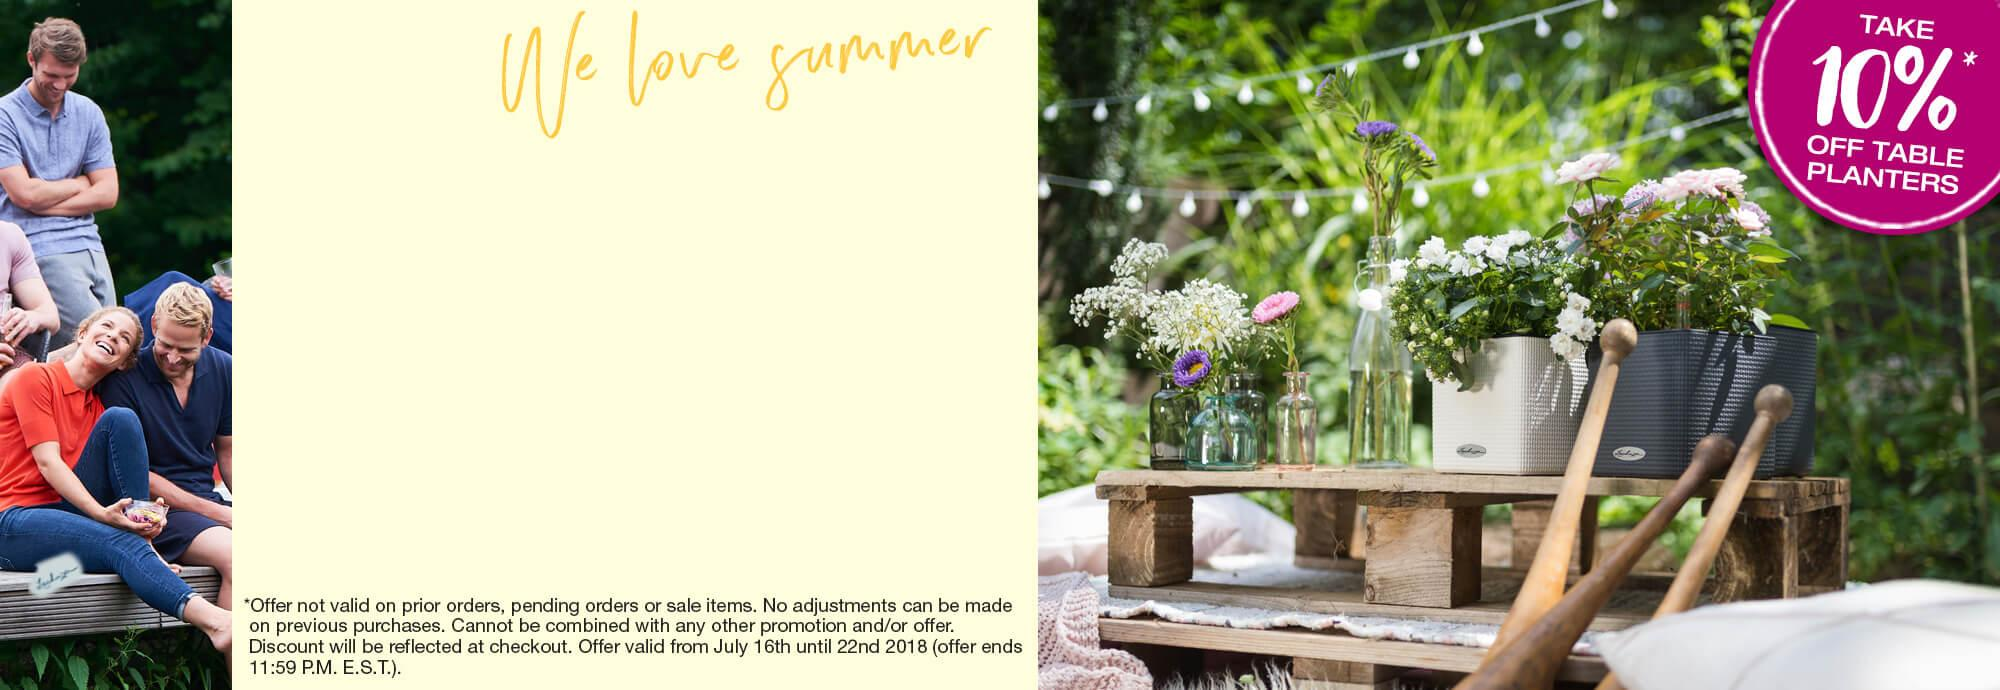 hero_banner_summer_table_planters_us